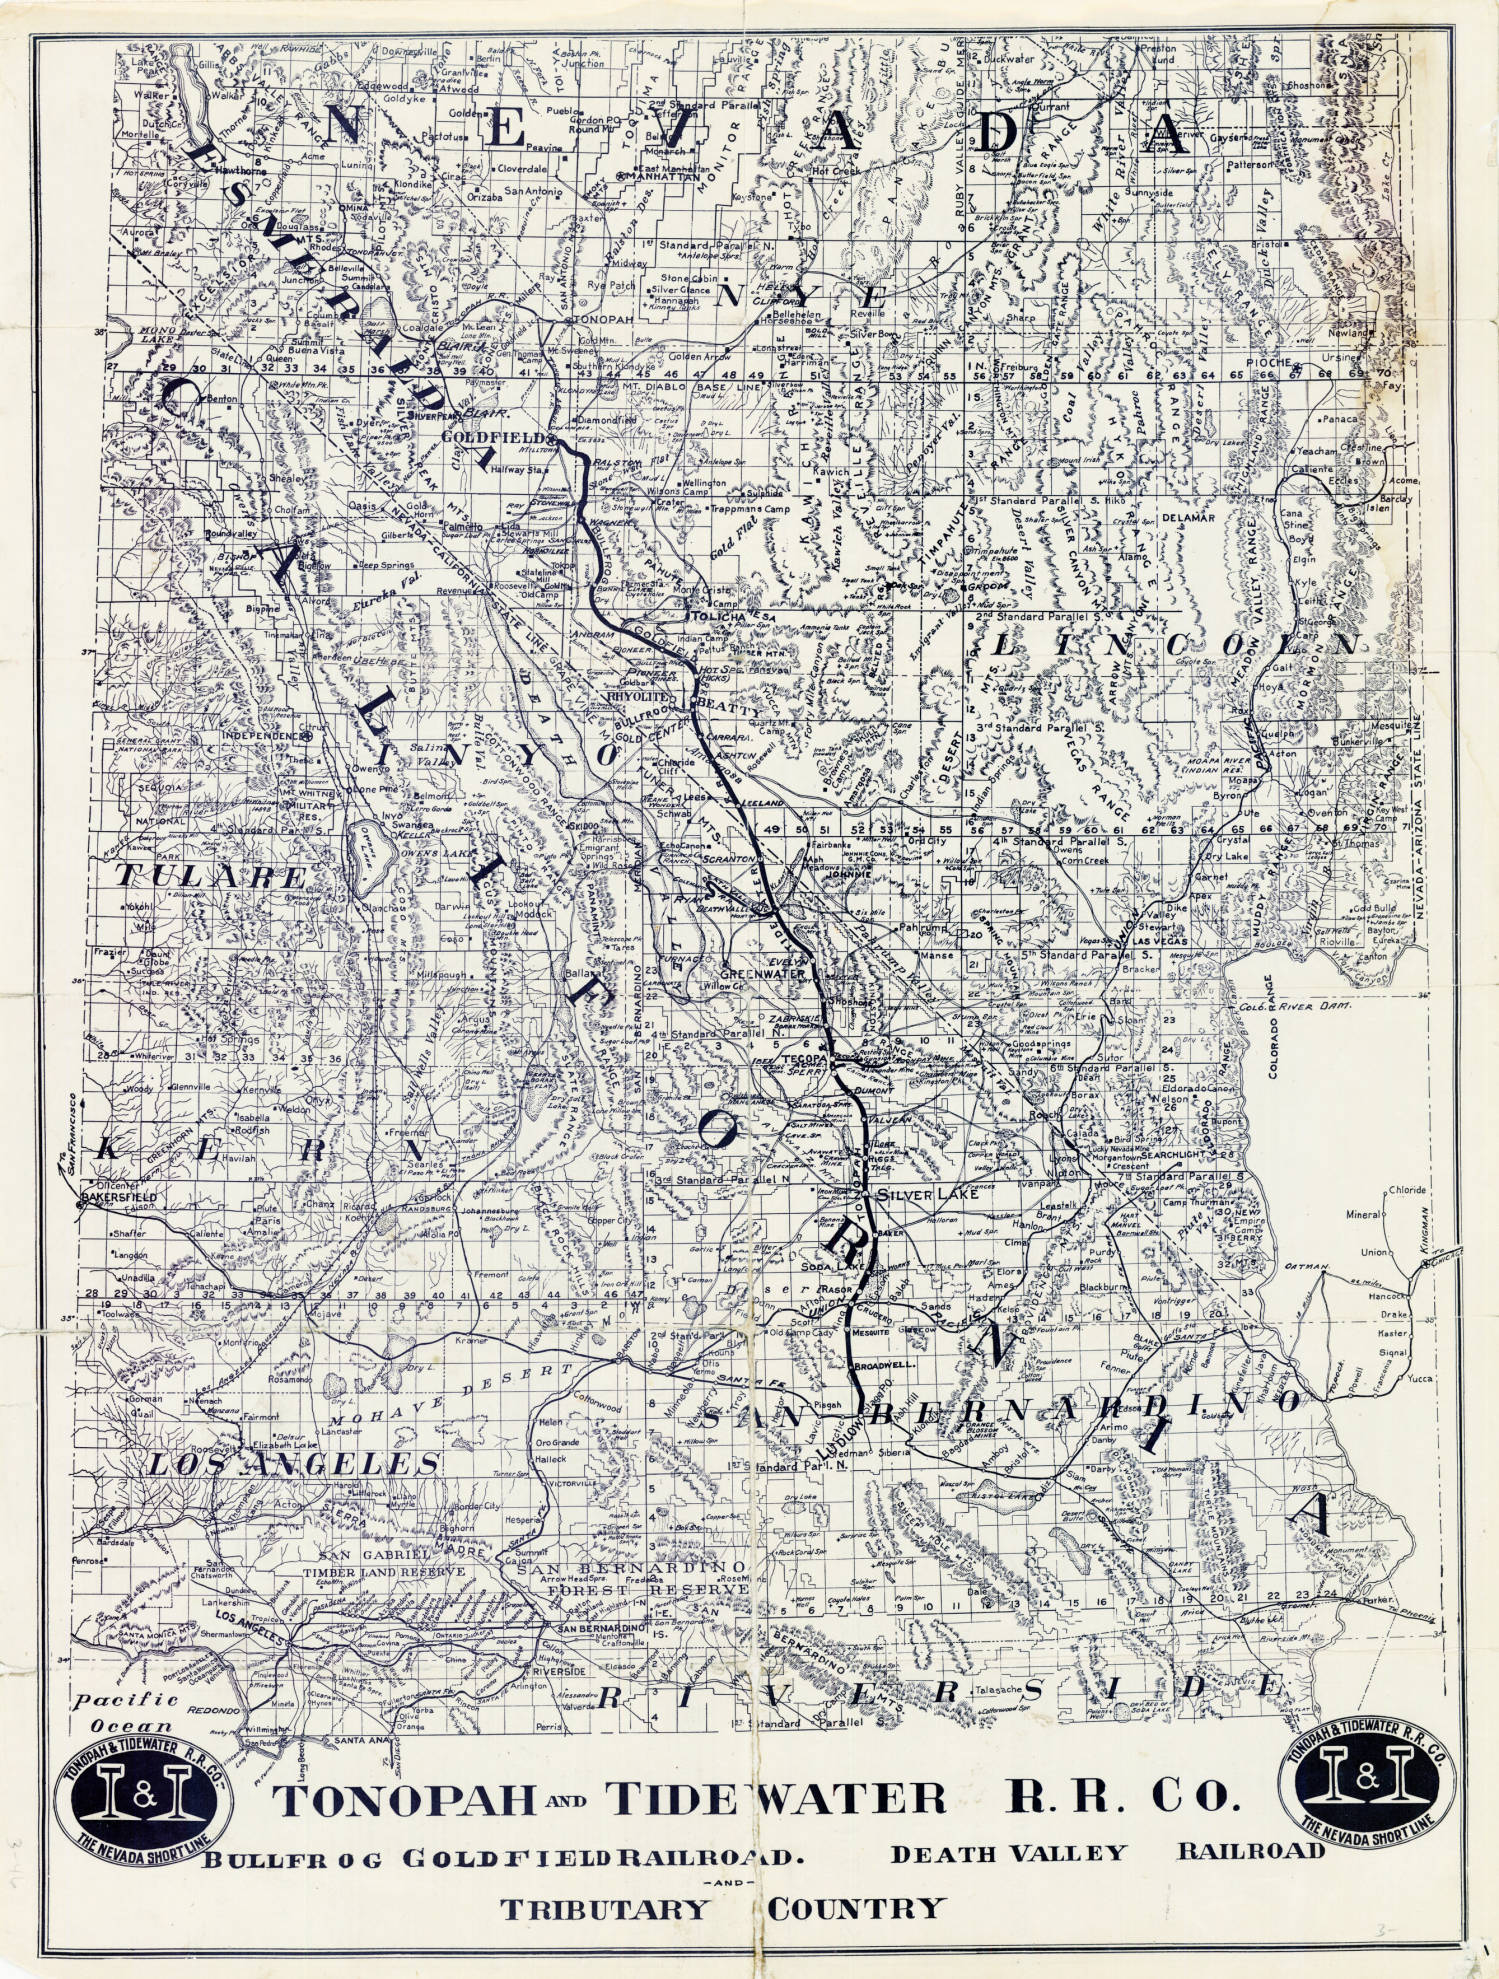 File:Map showing Tonopah Tidewater Railroad Company line from Ludlow on nevada military map, nevada transportation map, nevada map with latitude and longitude, nevada speed limit map, nevada farms, nevada gold maps, carlin trend nevada map, nevada largest cities, nevada transmission line map, nevada rivers, nevada lakes map, freight train routes california map, nevada road map, u.s. geothermal map, eagle valley nevada map, nevada utilities map, nevada reservoirs, nevada abandoned railroads, nevada on map, nevada gis geologic maps,